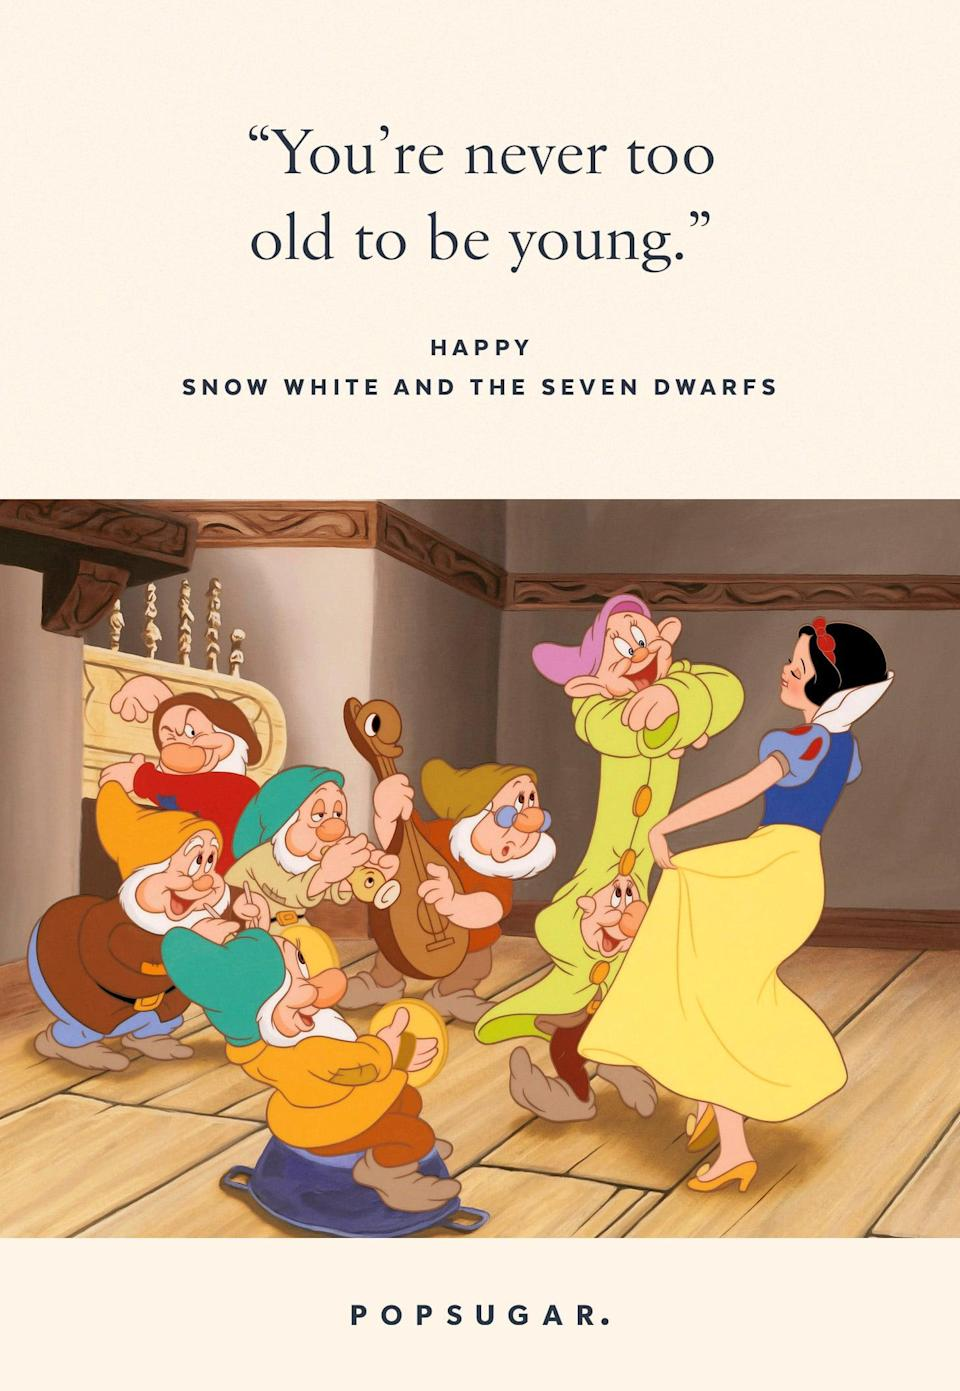 "<p>""You're never too old to be young."" - Happy, <b>Snow White and the Seven Dwarfs</b></p>"